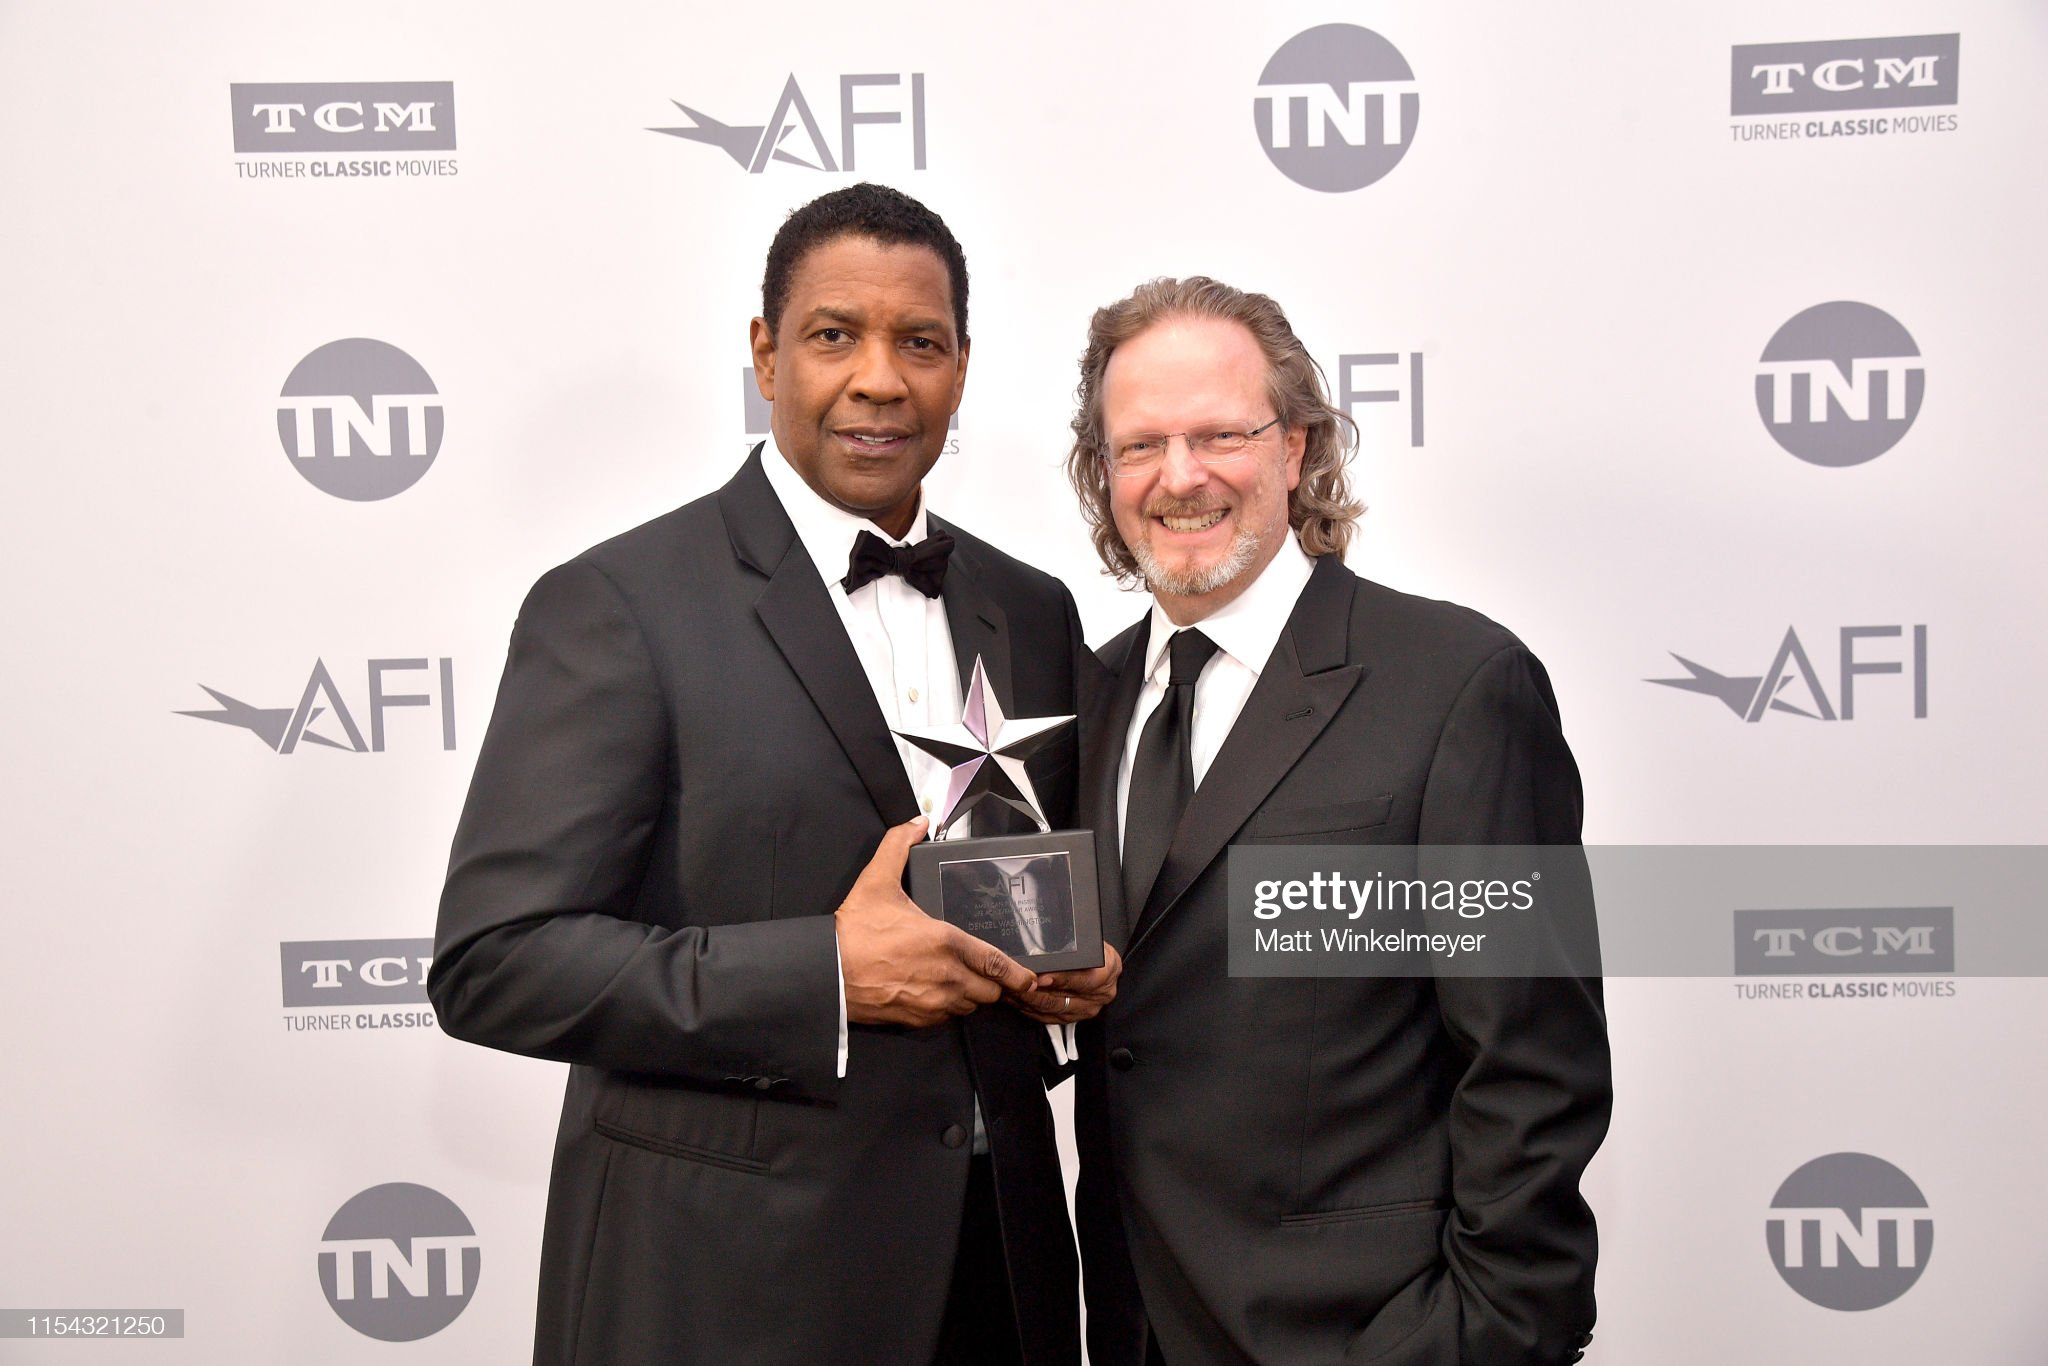 ¿Cuánto mide Denzel Washington? - Altura - Real height Denzel-washington-and-president-and-ceo-of-afi-bob-gazzale-attend-the-picture-id1154321250?s=2048x2048